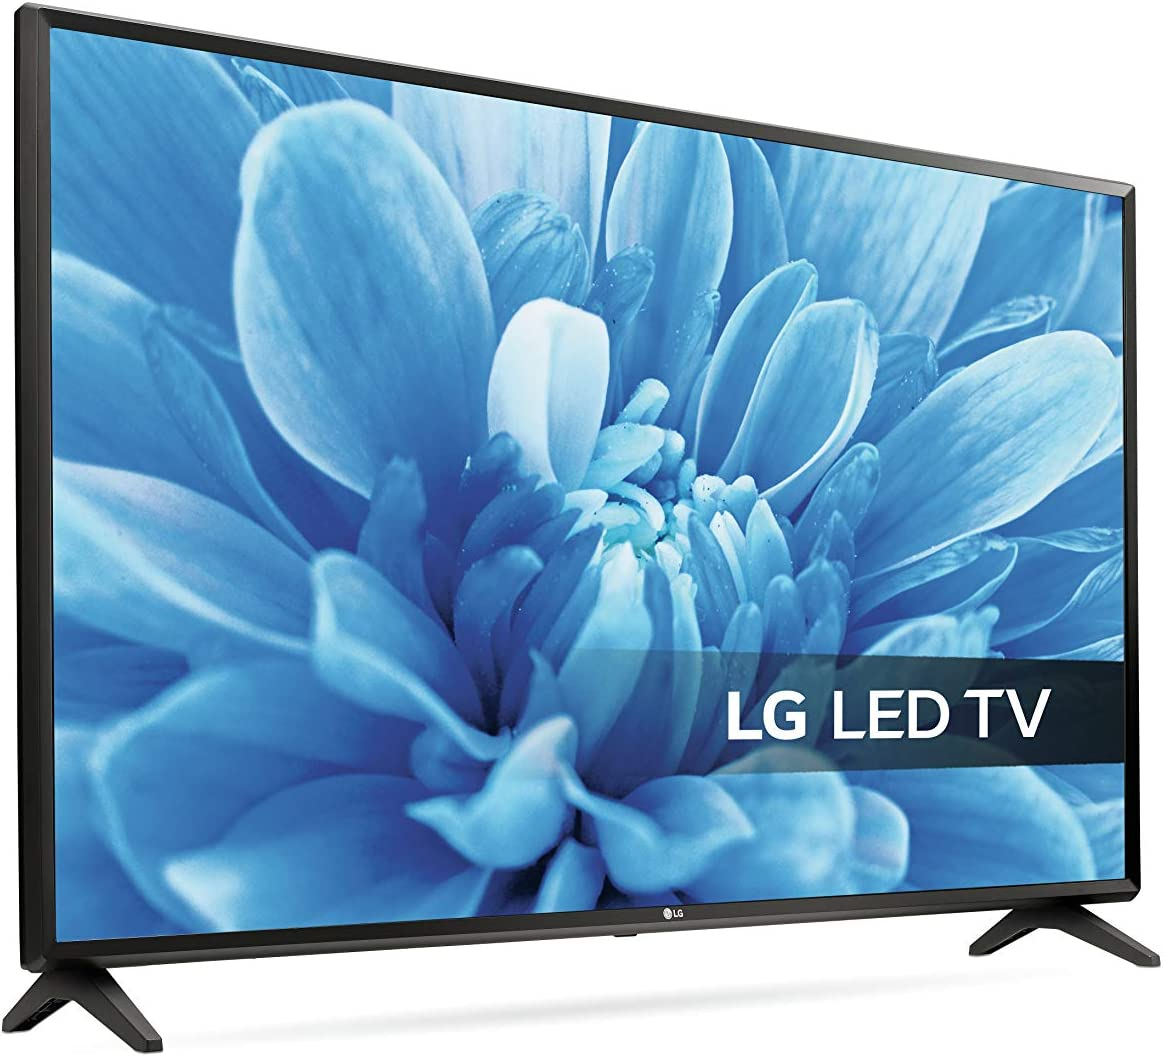 TELEVISOR TV LED 32 32LM550B LG: Lg: Amazon.es: Electrónica